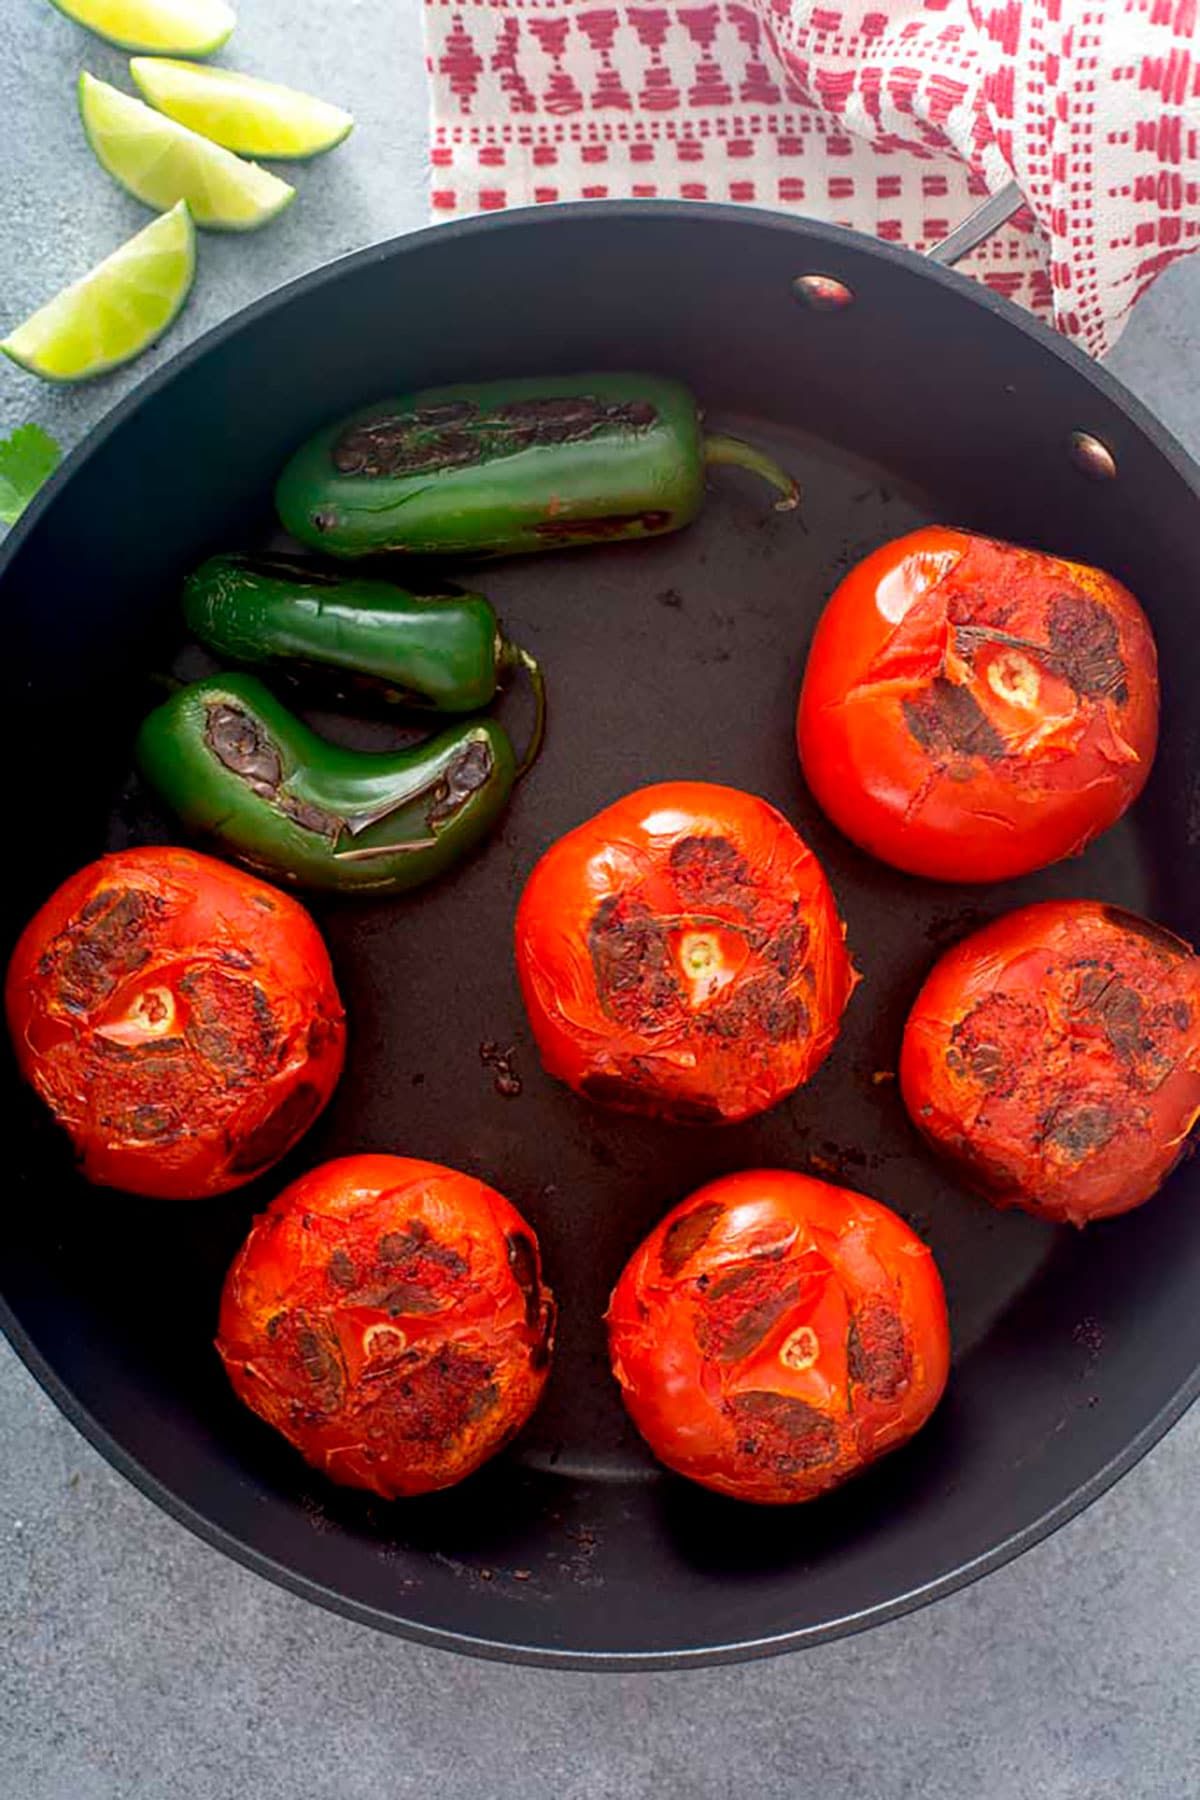 Tomatoes and jalapeños getting charred in a skillet